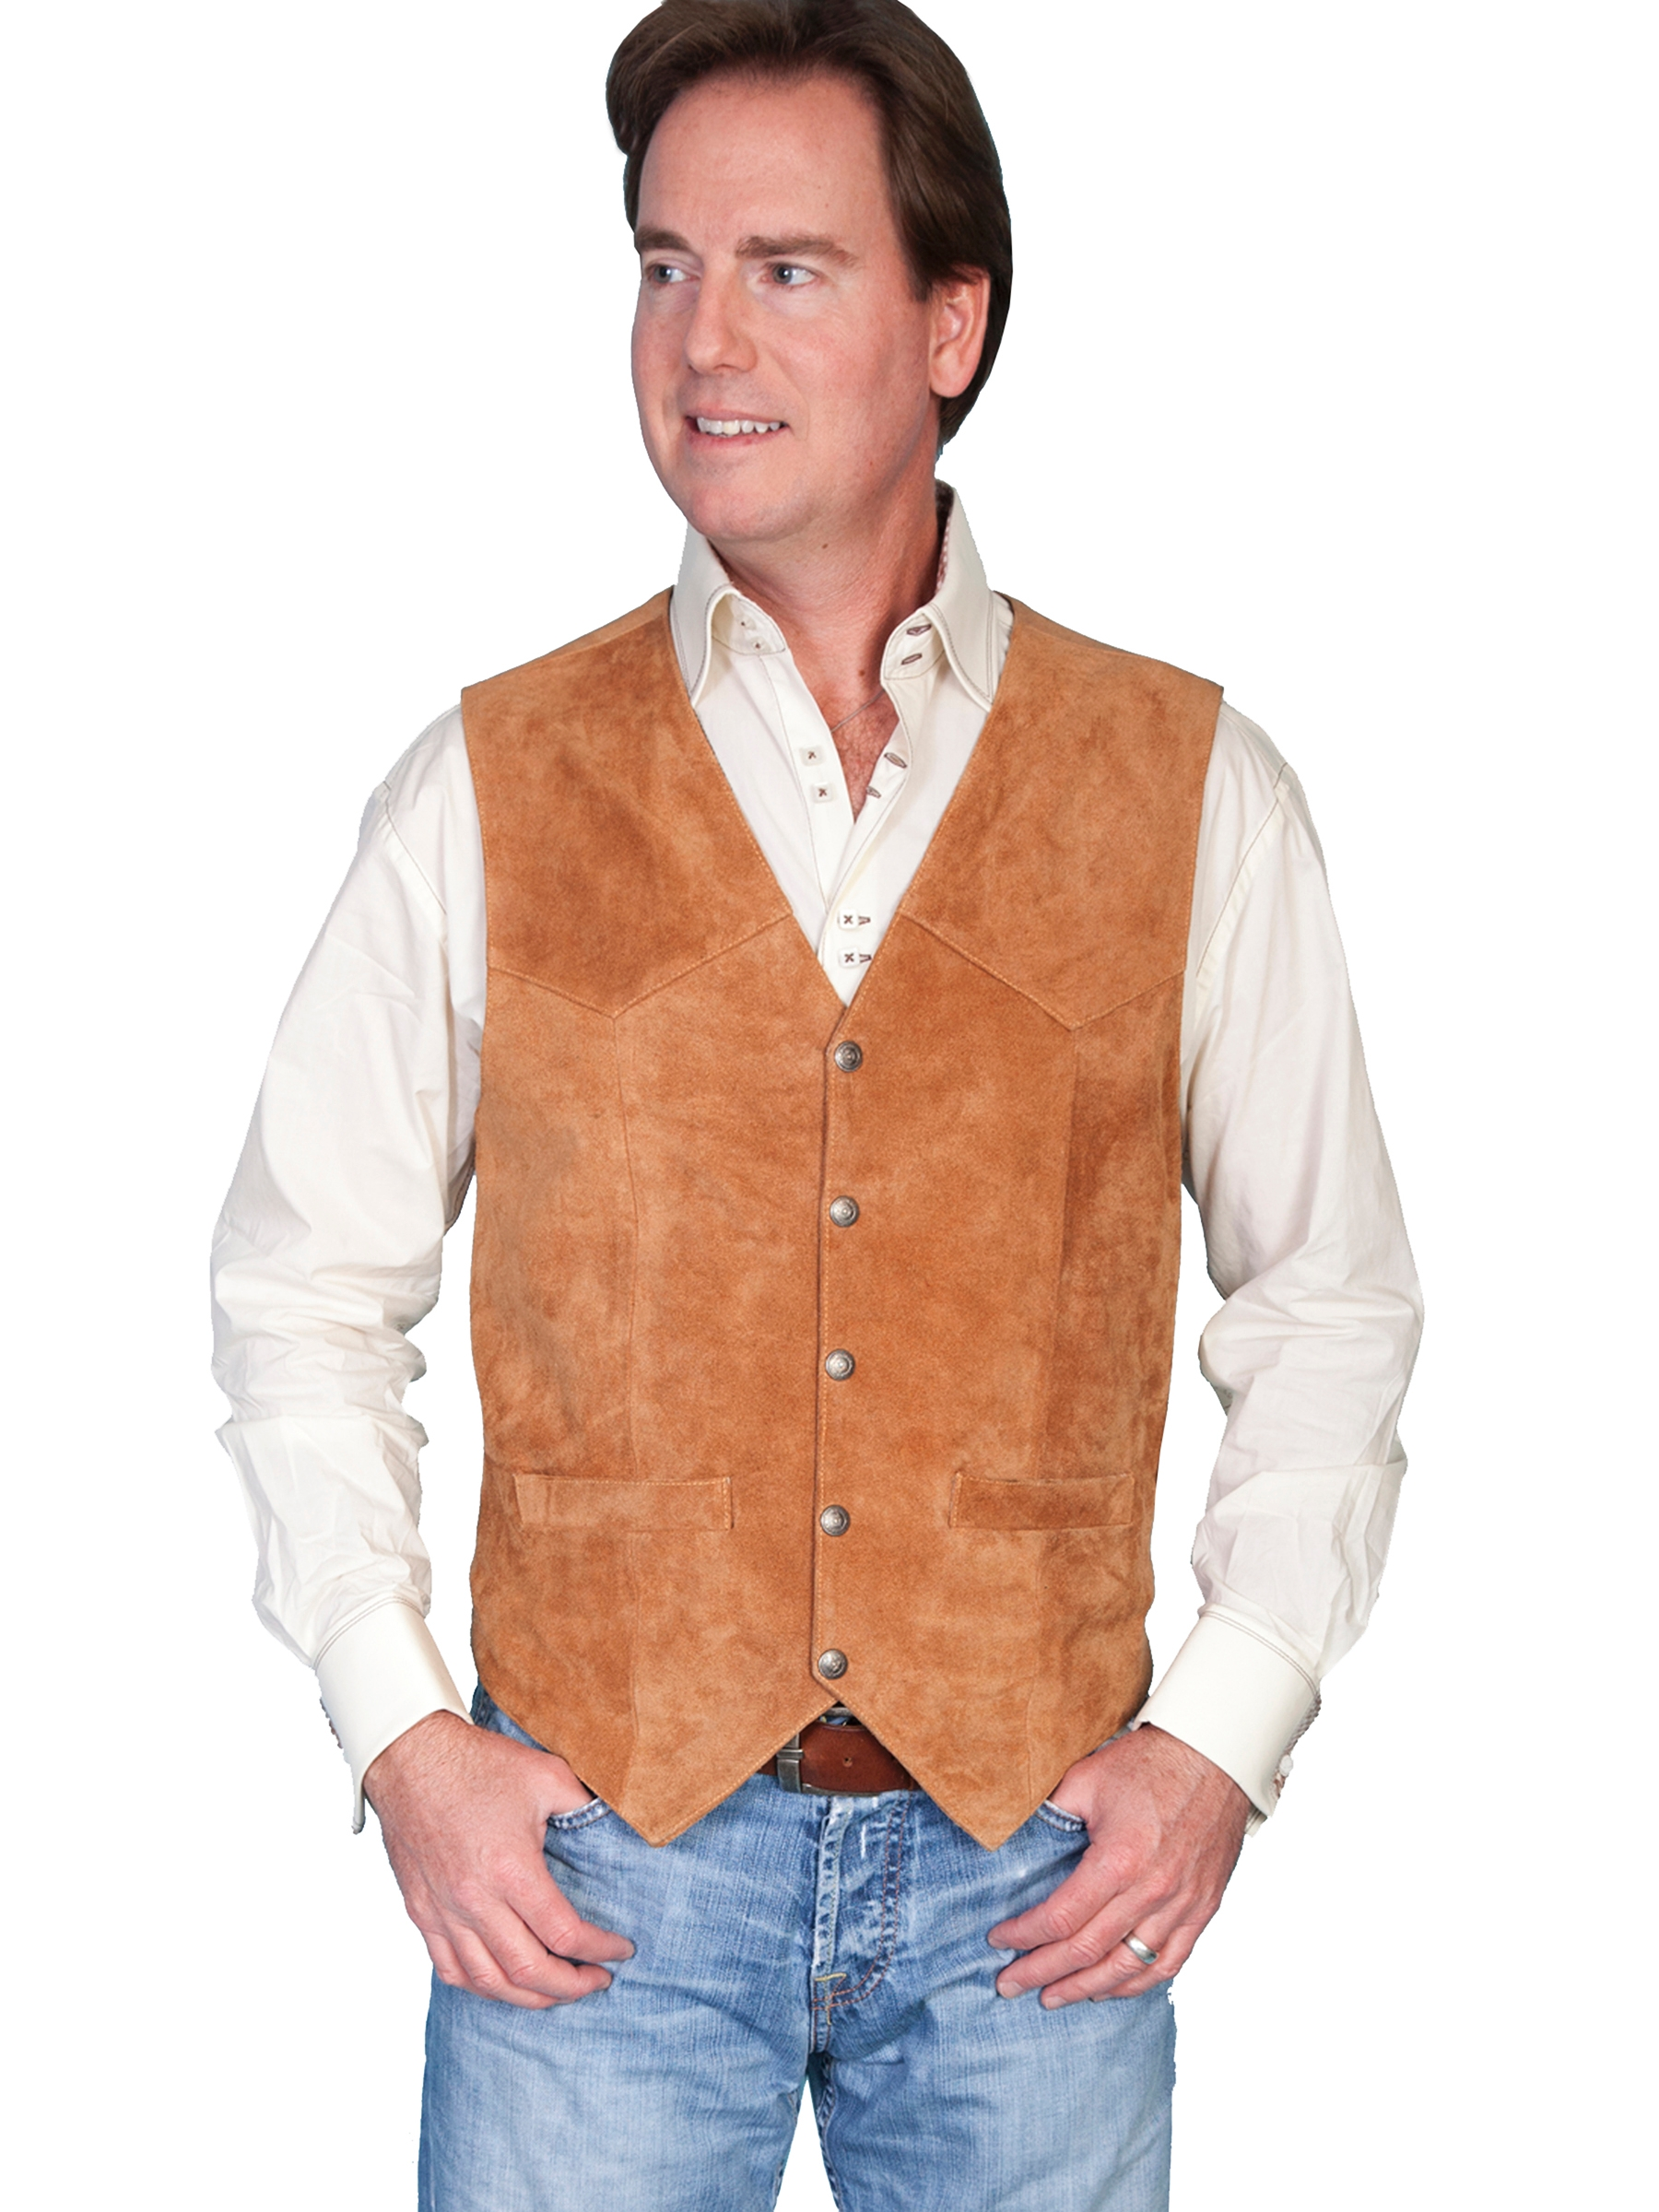 Mens Scully Calfe Suede Rustic leather western vest, mens western vest, western vest for men, suede western vest, scully vest, scully mens vest, fringe western vest, western fringe vest, leather western vest